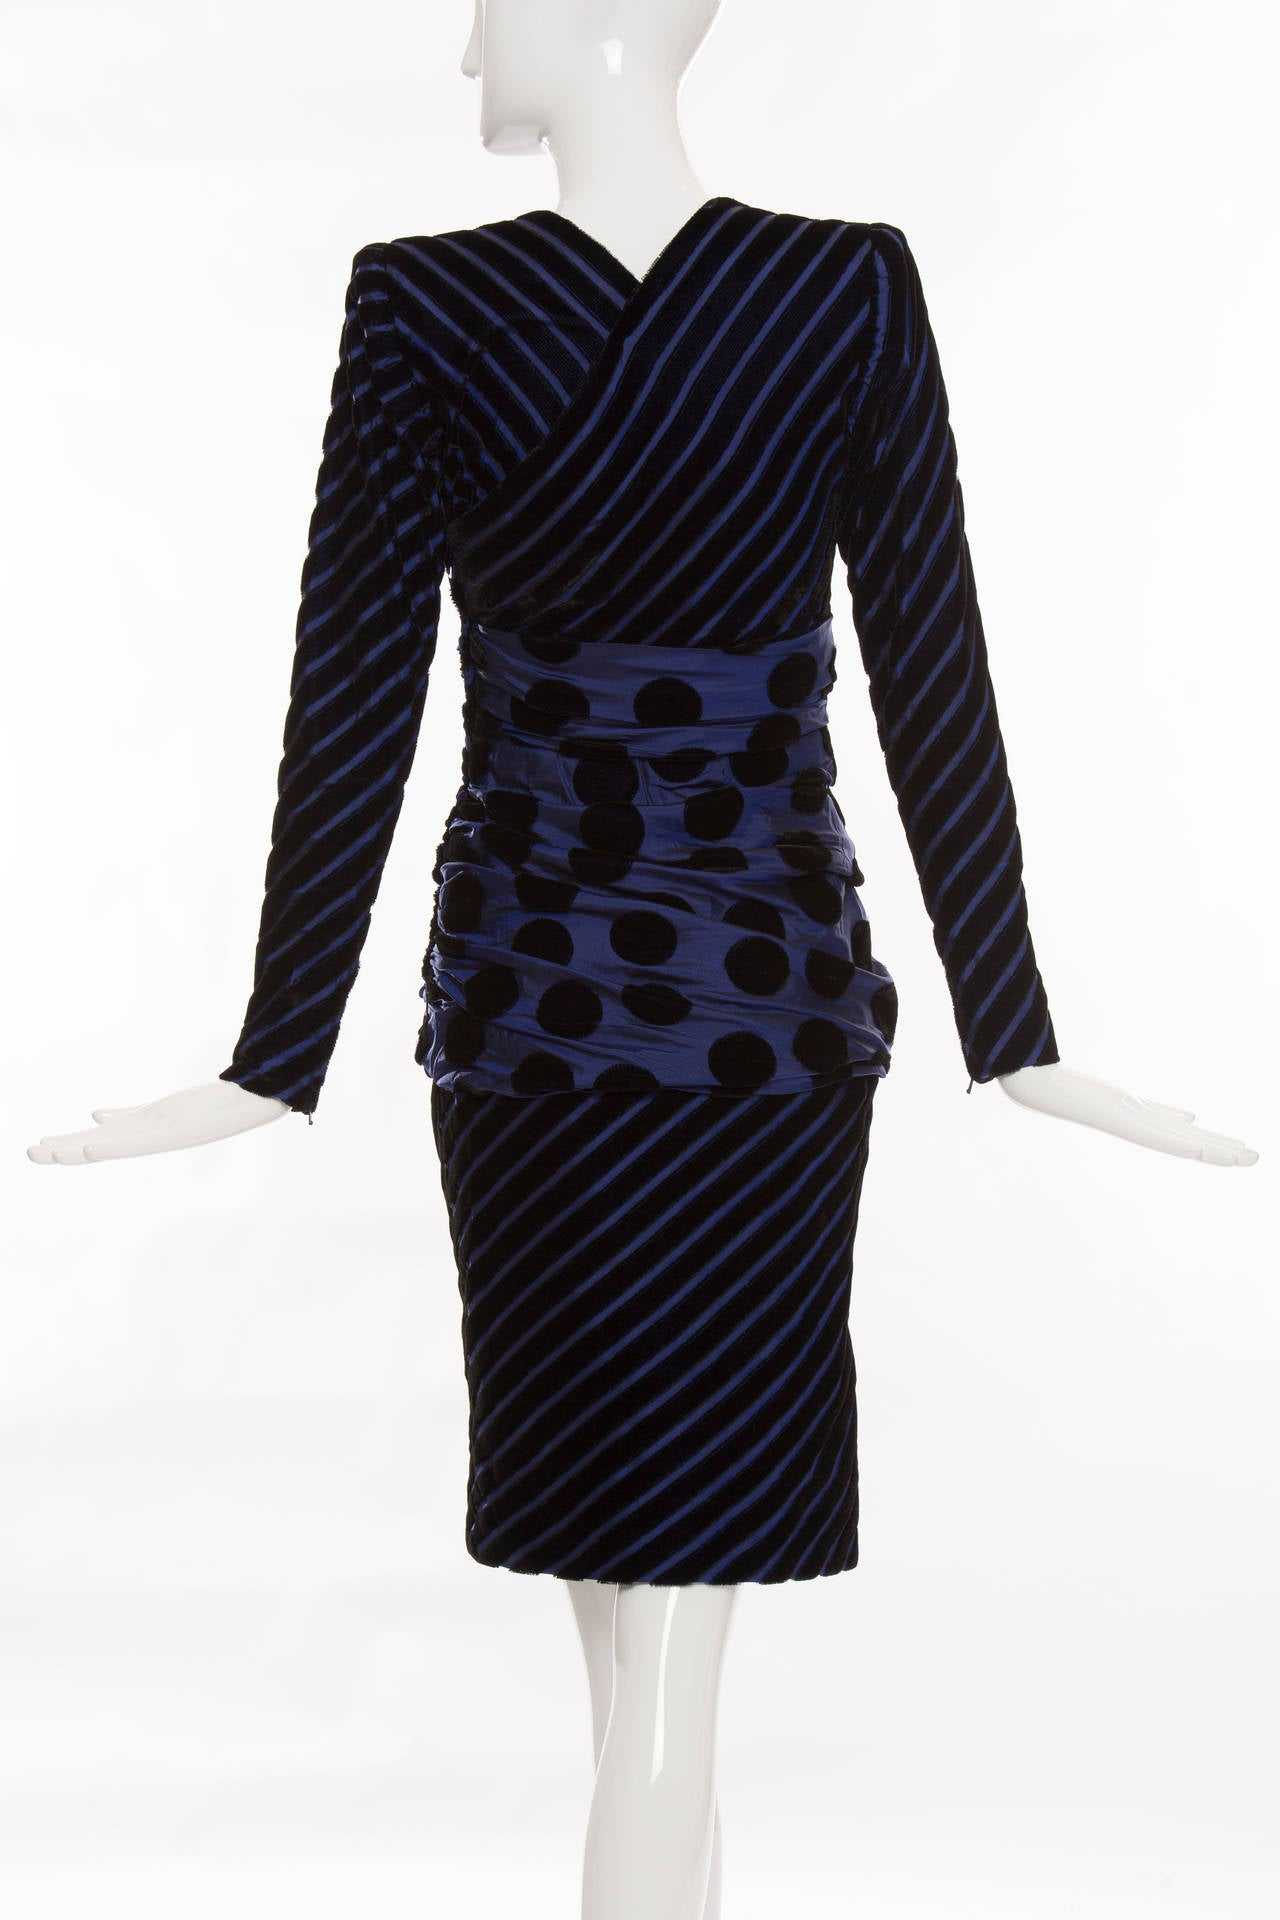 Givenchy Haute Couture Striped Velvet And Taffeta Dress, Circa 1980's In Excellent Condition For Sale In Cincinnati, OH